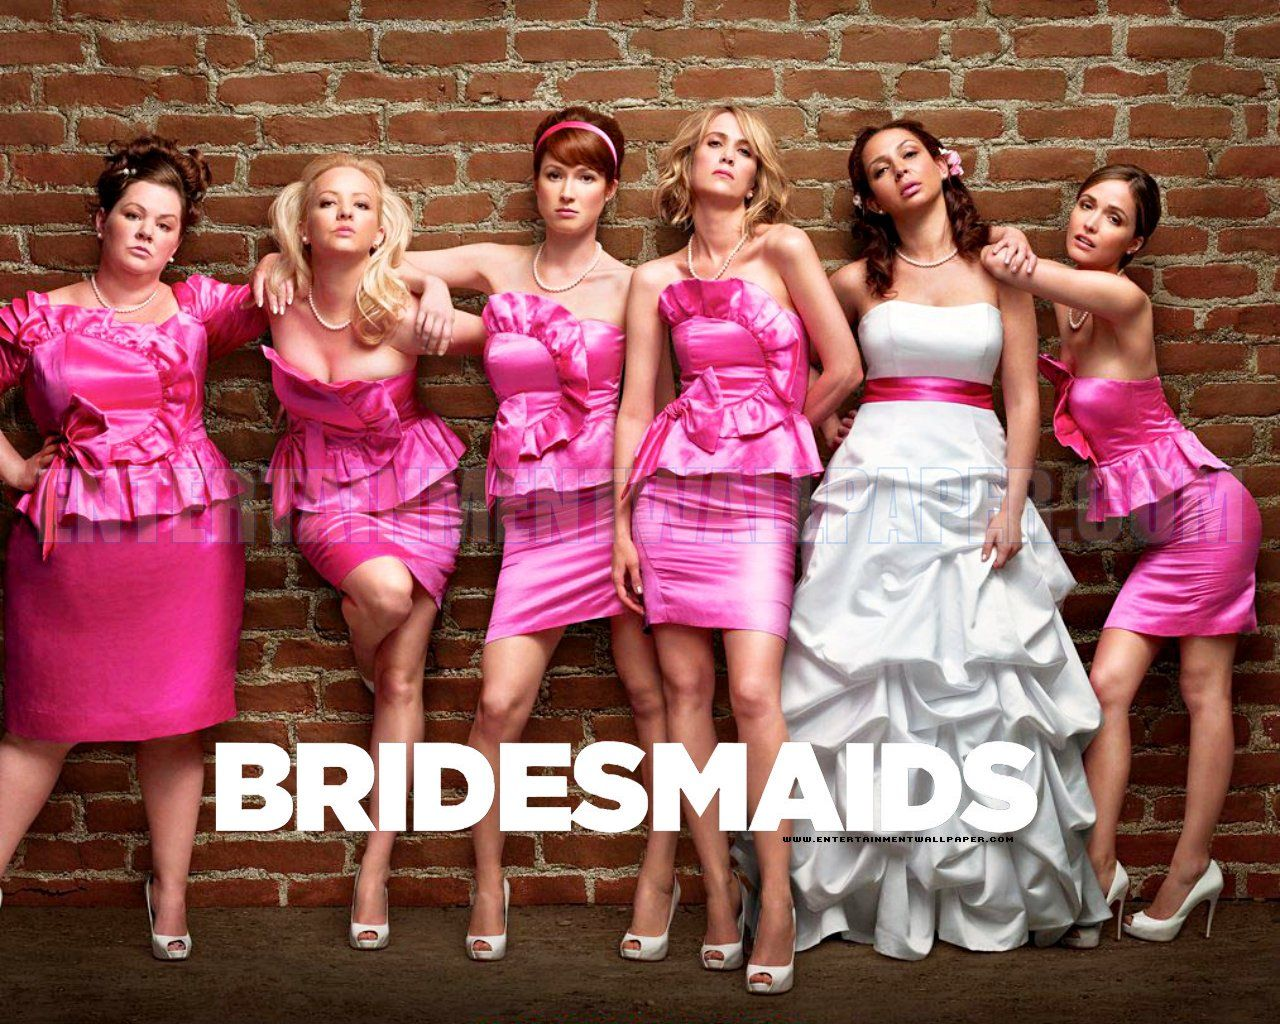 Bridesmaids Wallpaper - Original size, download now. | moviesmypicks ...